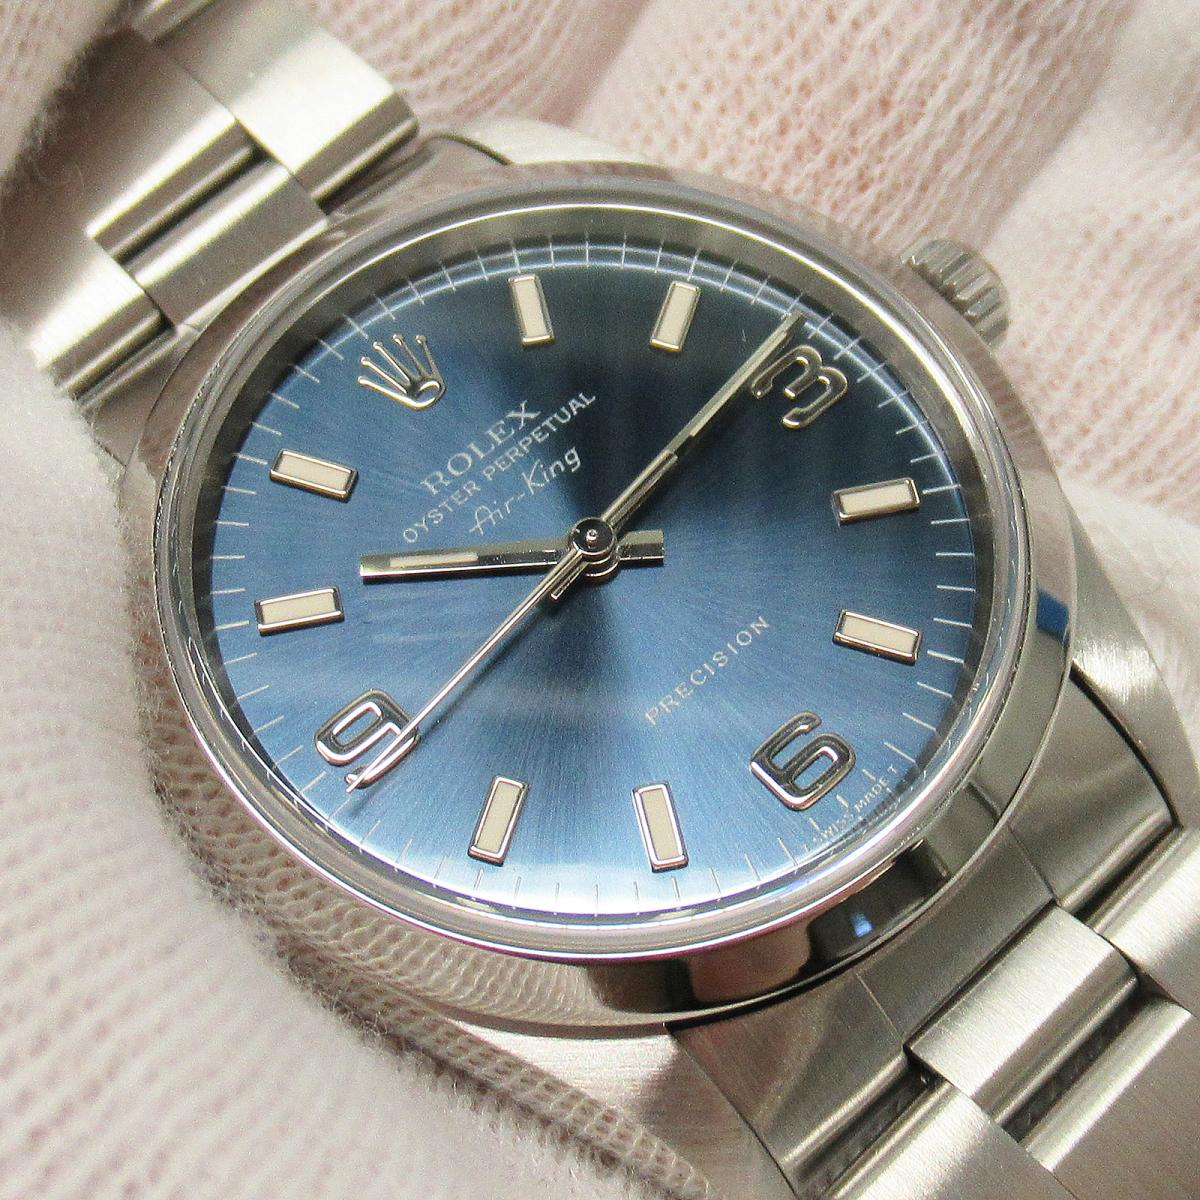 ROLEX 時計 14000 藍色面盤不銹鋼腕錶 Oyster Perpetual Air King Watch 1996- 14000